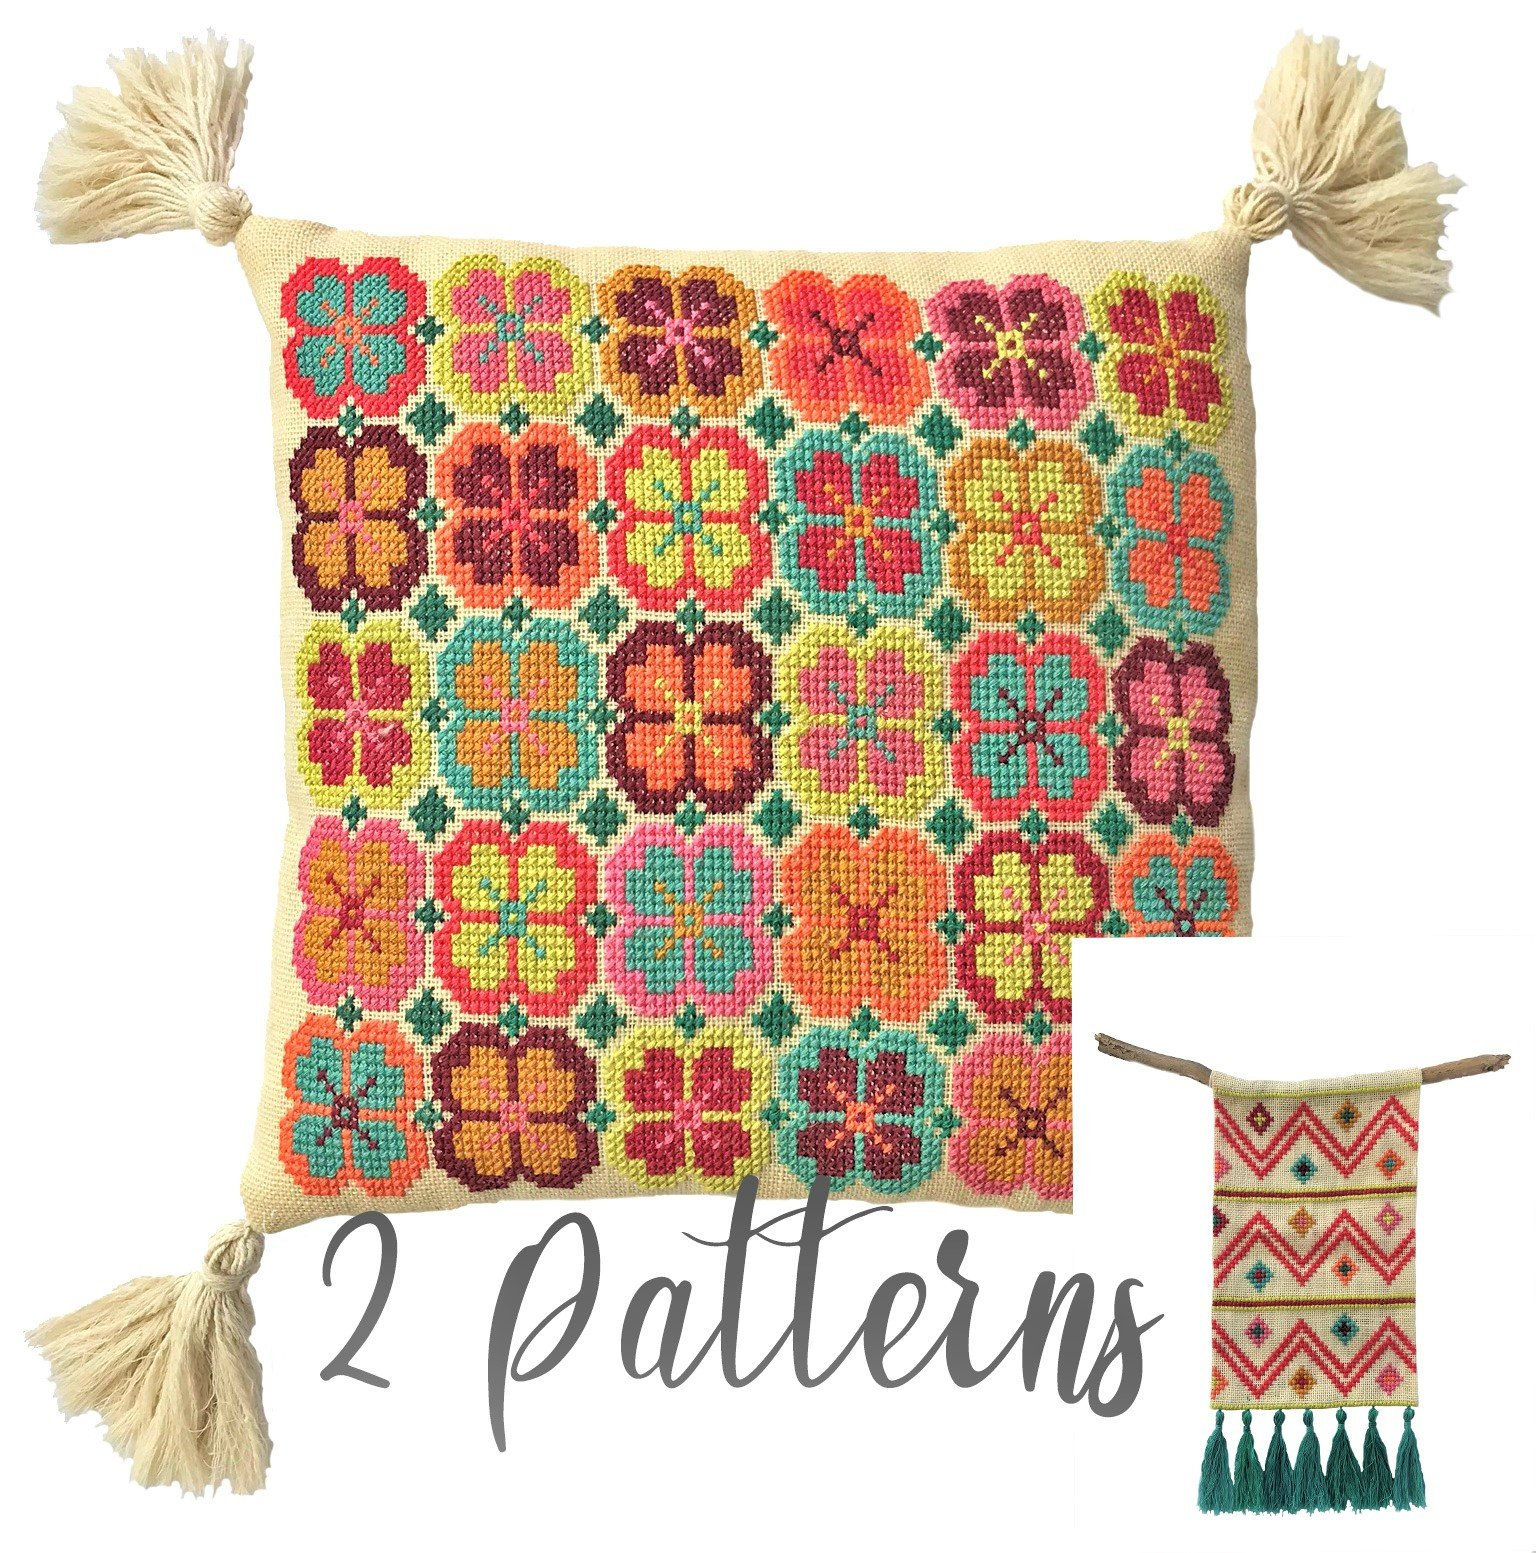 Bohemian Embroidery Patterns Bohemian Cross Stitch Pattern Diy Embroidery Cushion Wall Hanging Boho Inspired Needlework Pdf Instant Download Bundle 2 Patterns